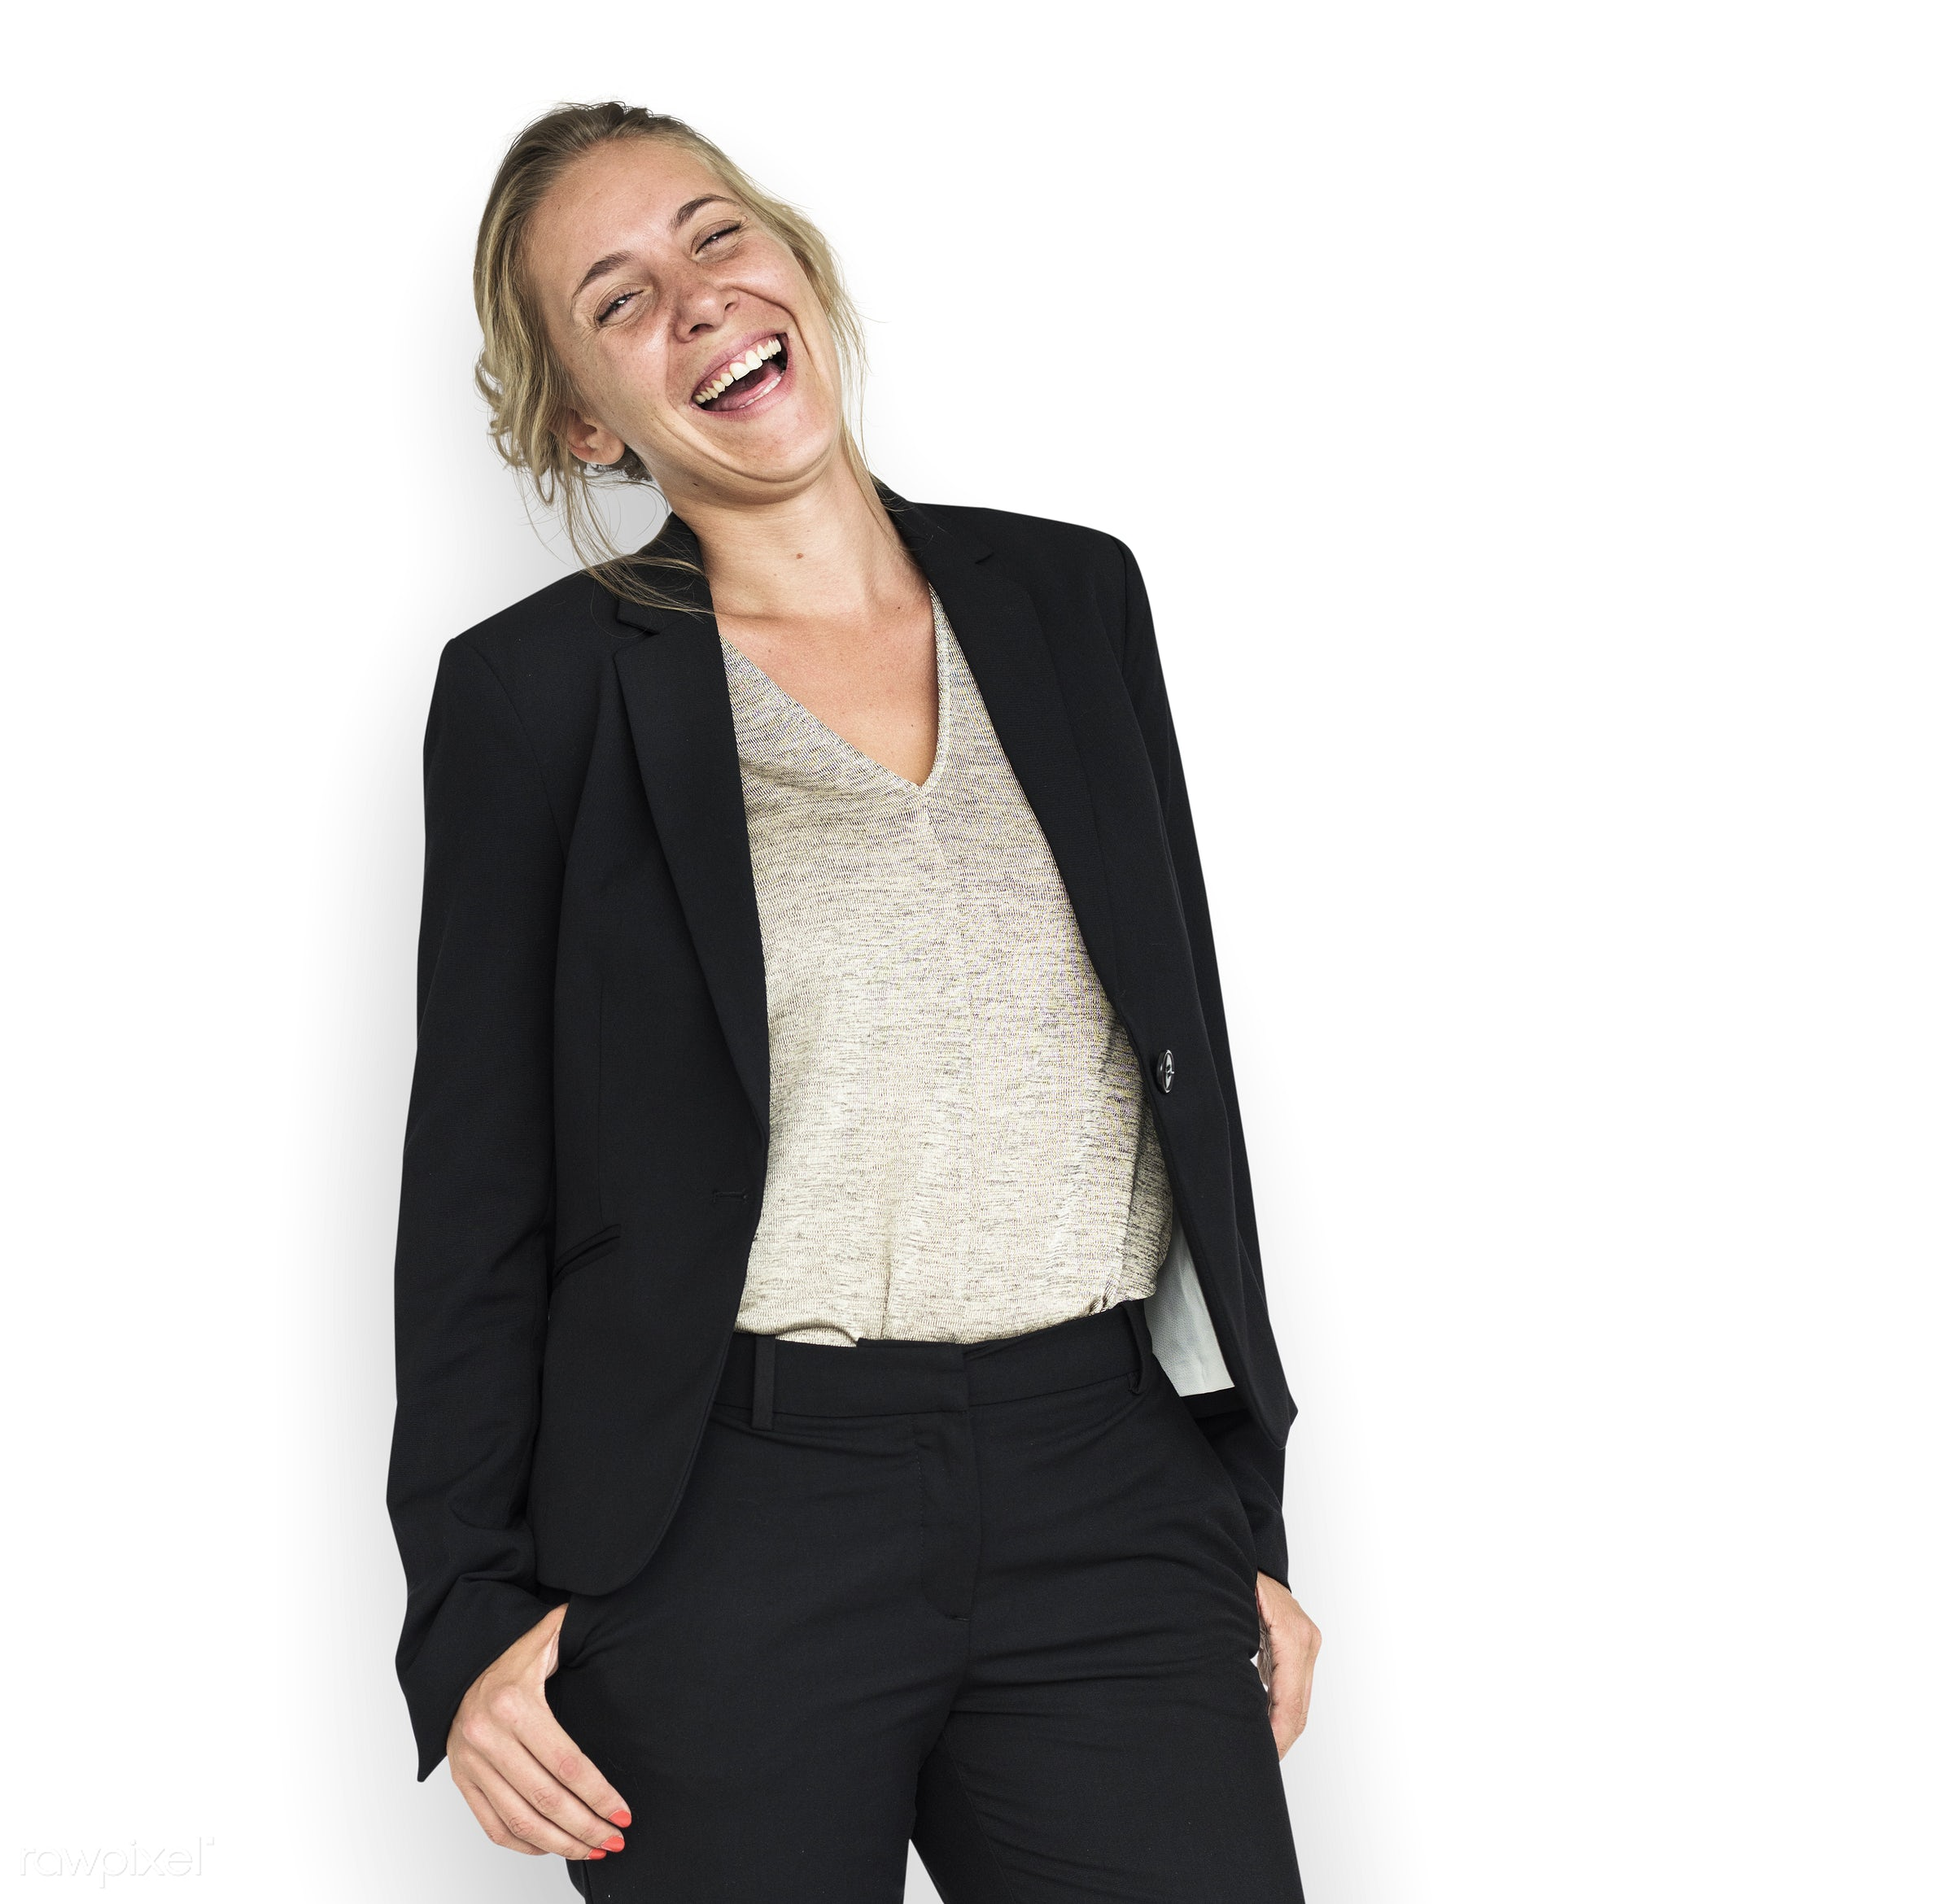 expression, studio, person, business wear, people, business, caucasian, girl, woman, happy, brainstorm, smile, cheerful,...